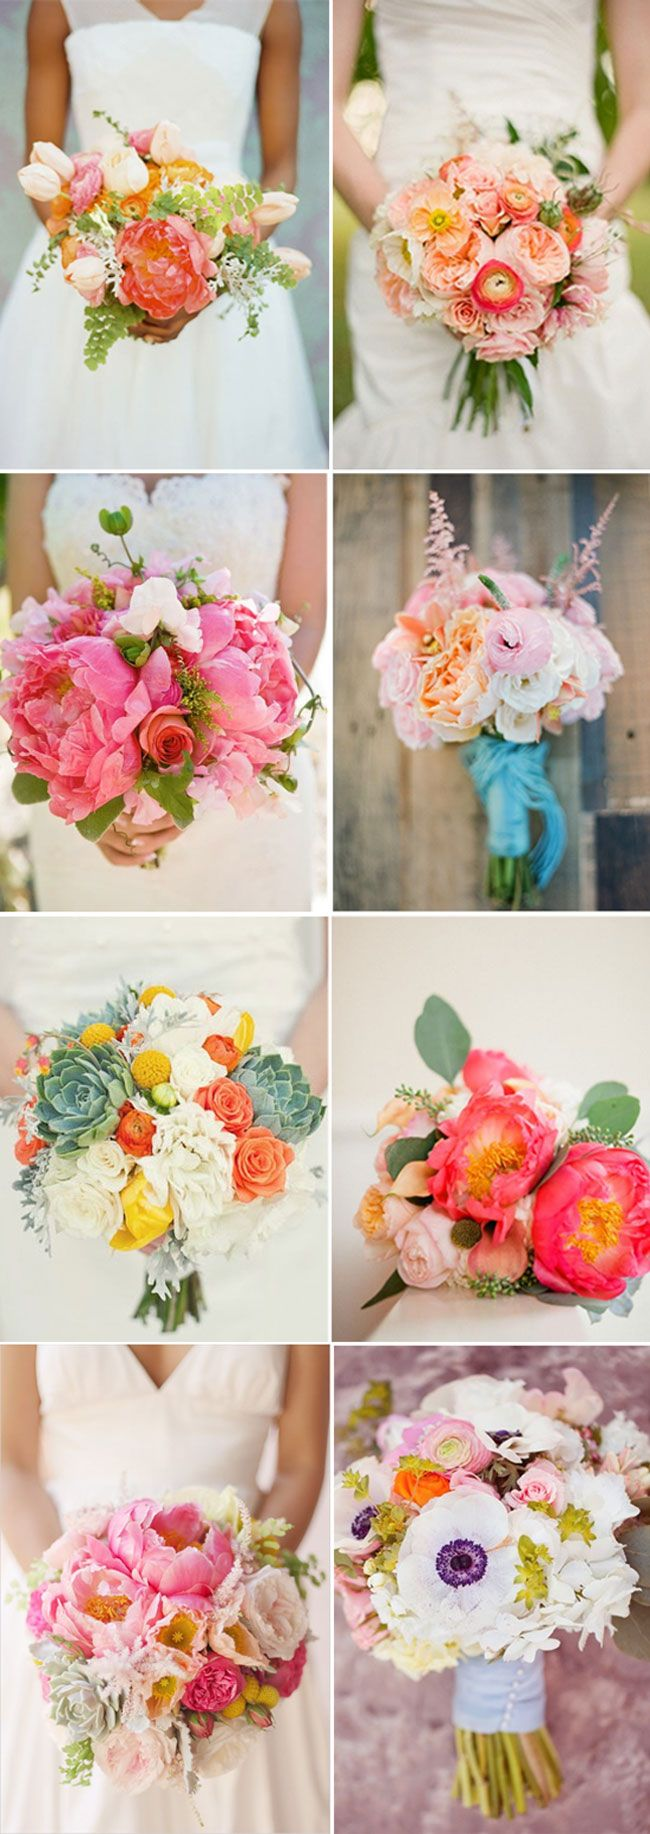 Bouquet ideas for the summer bride